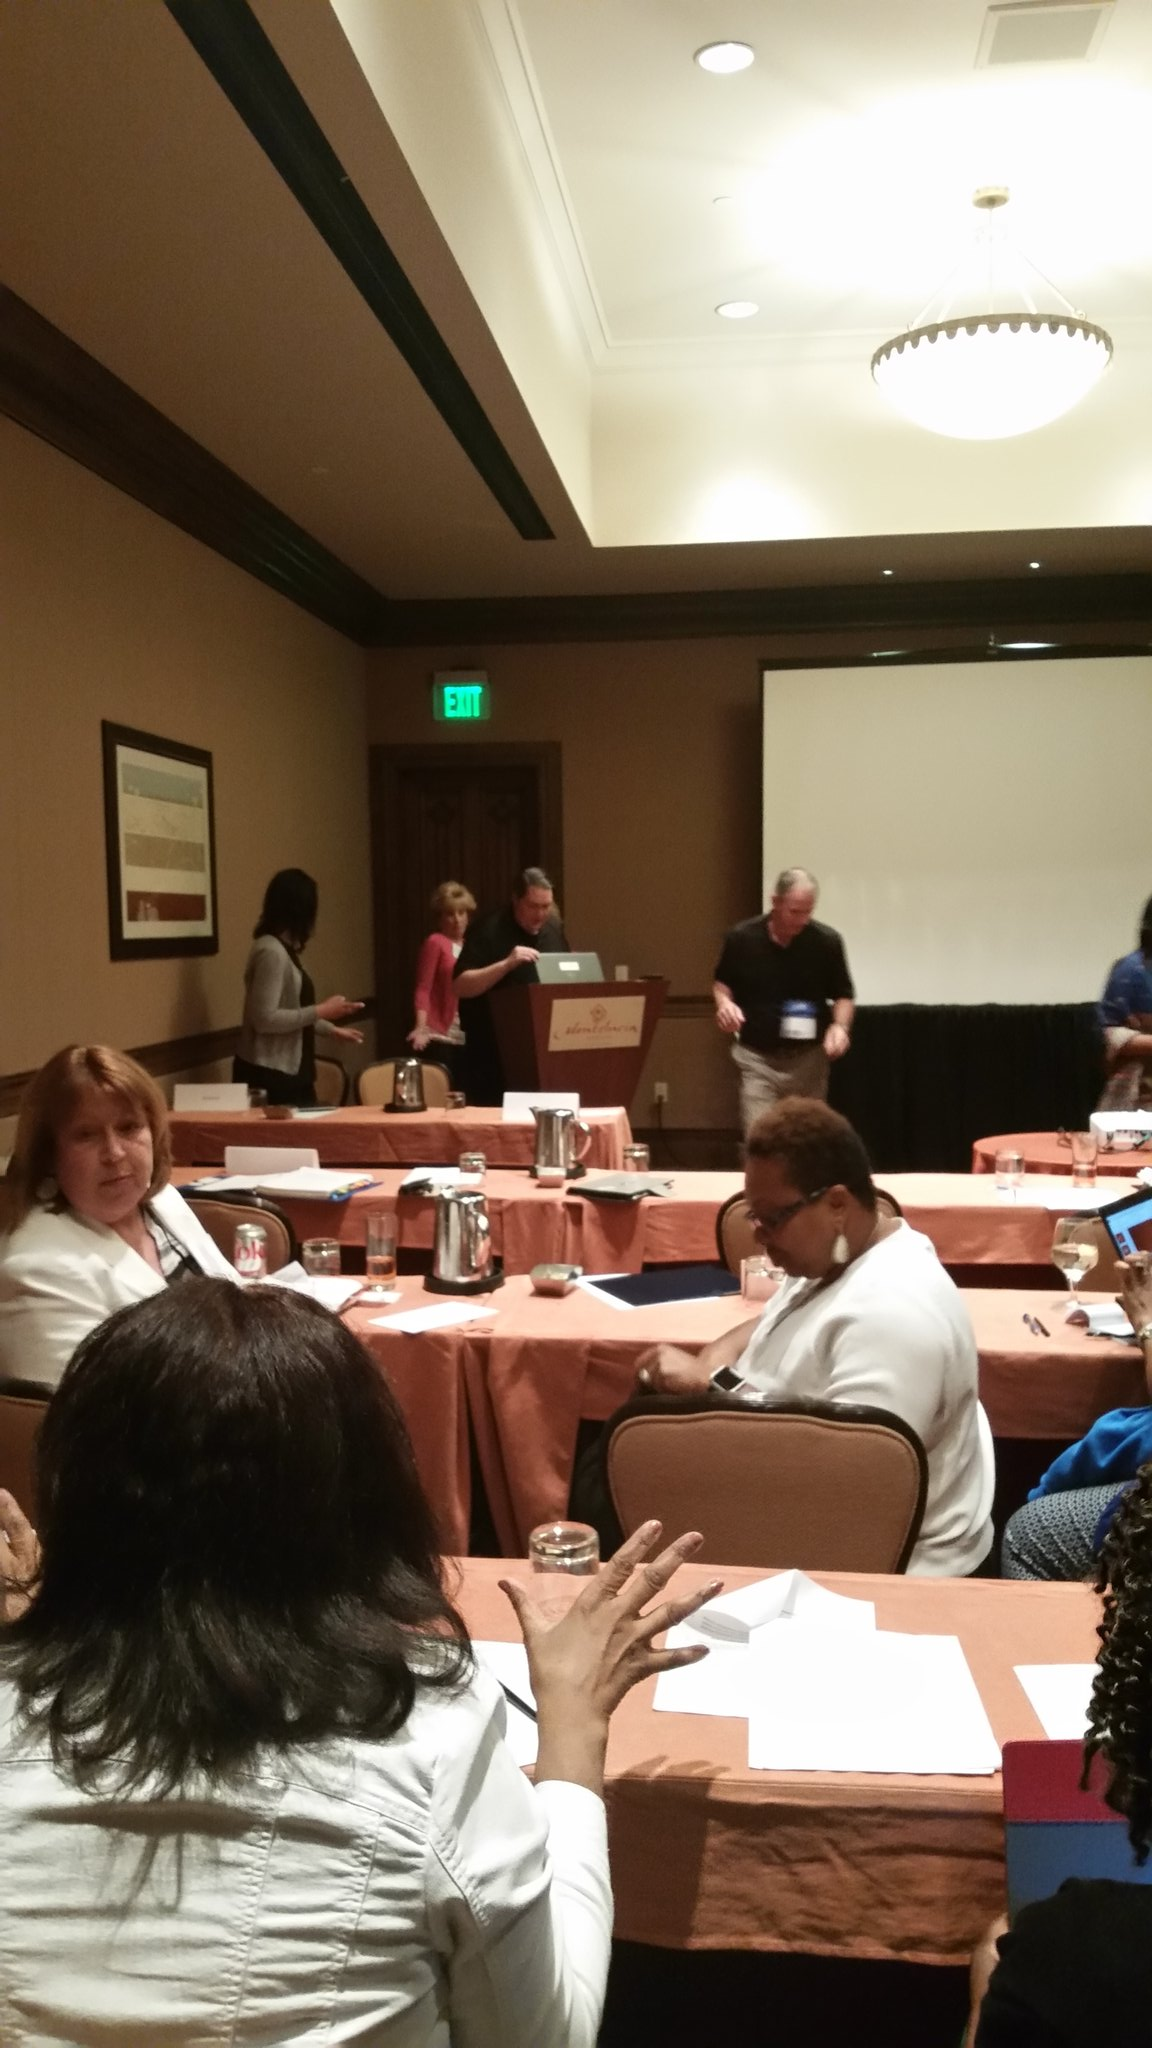 AAAED Sr CAAP program at the 43rd National Conference in Scottsdale https://t.co/bNg5lKMcRY https://t.co/7jYI8h5r9h